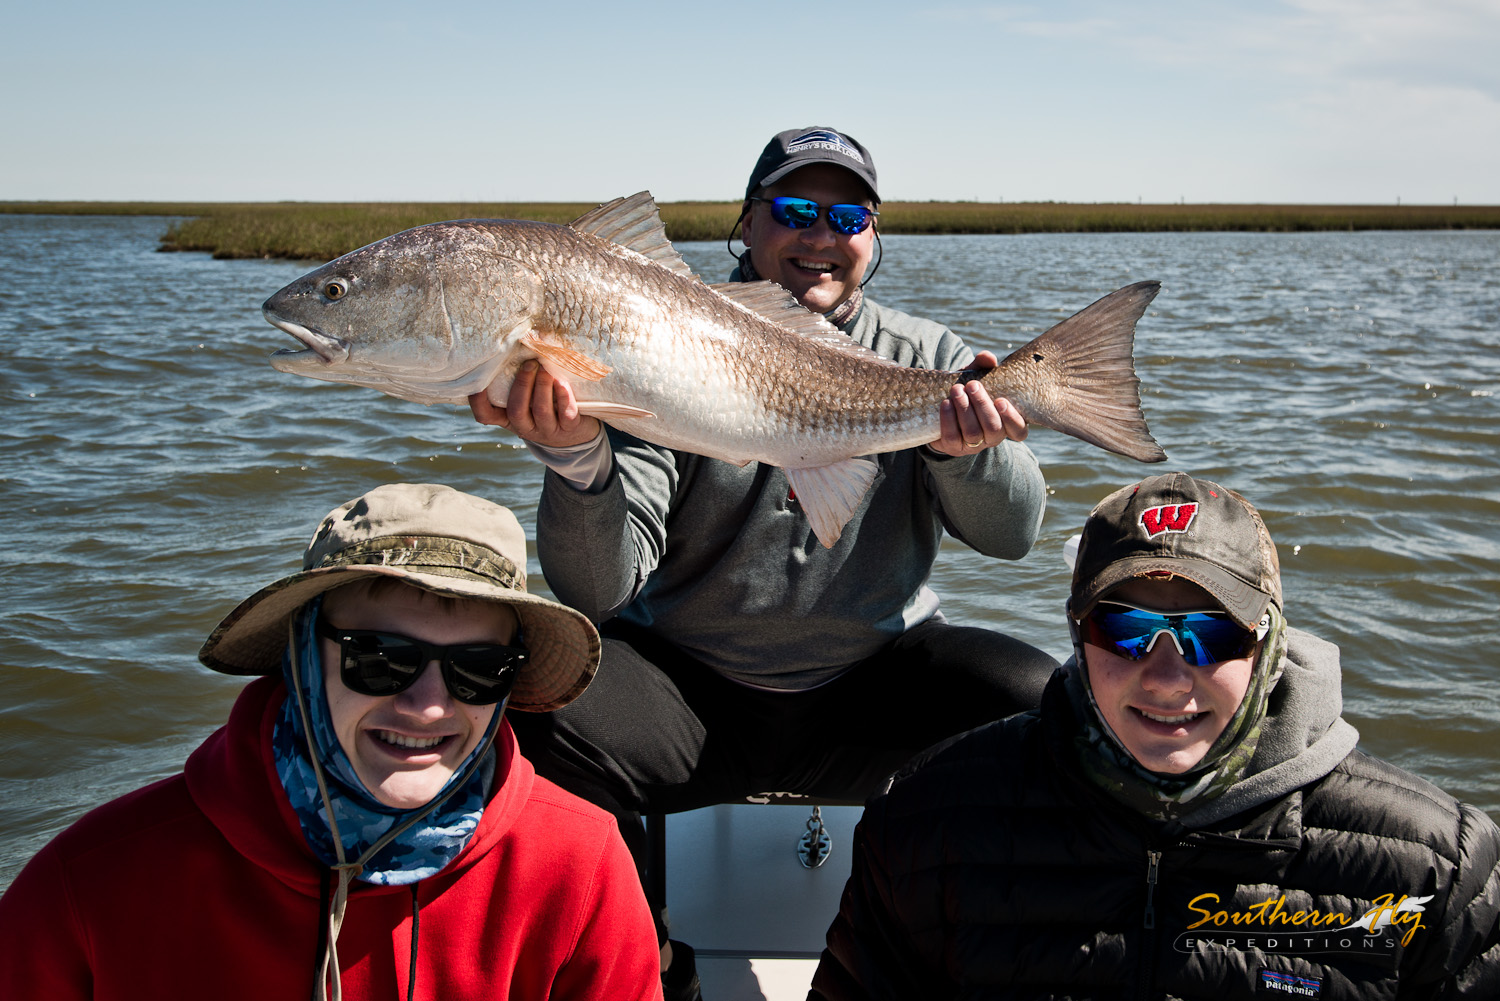 2019-03-19_SouthernFlyExpeditions_NewOrleans_ToddSchroeder-2.jpg